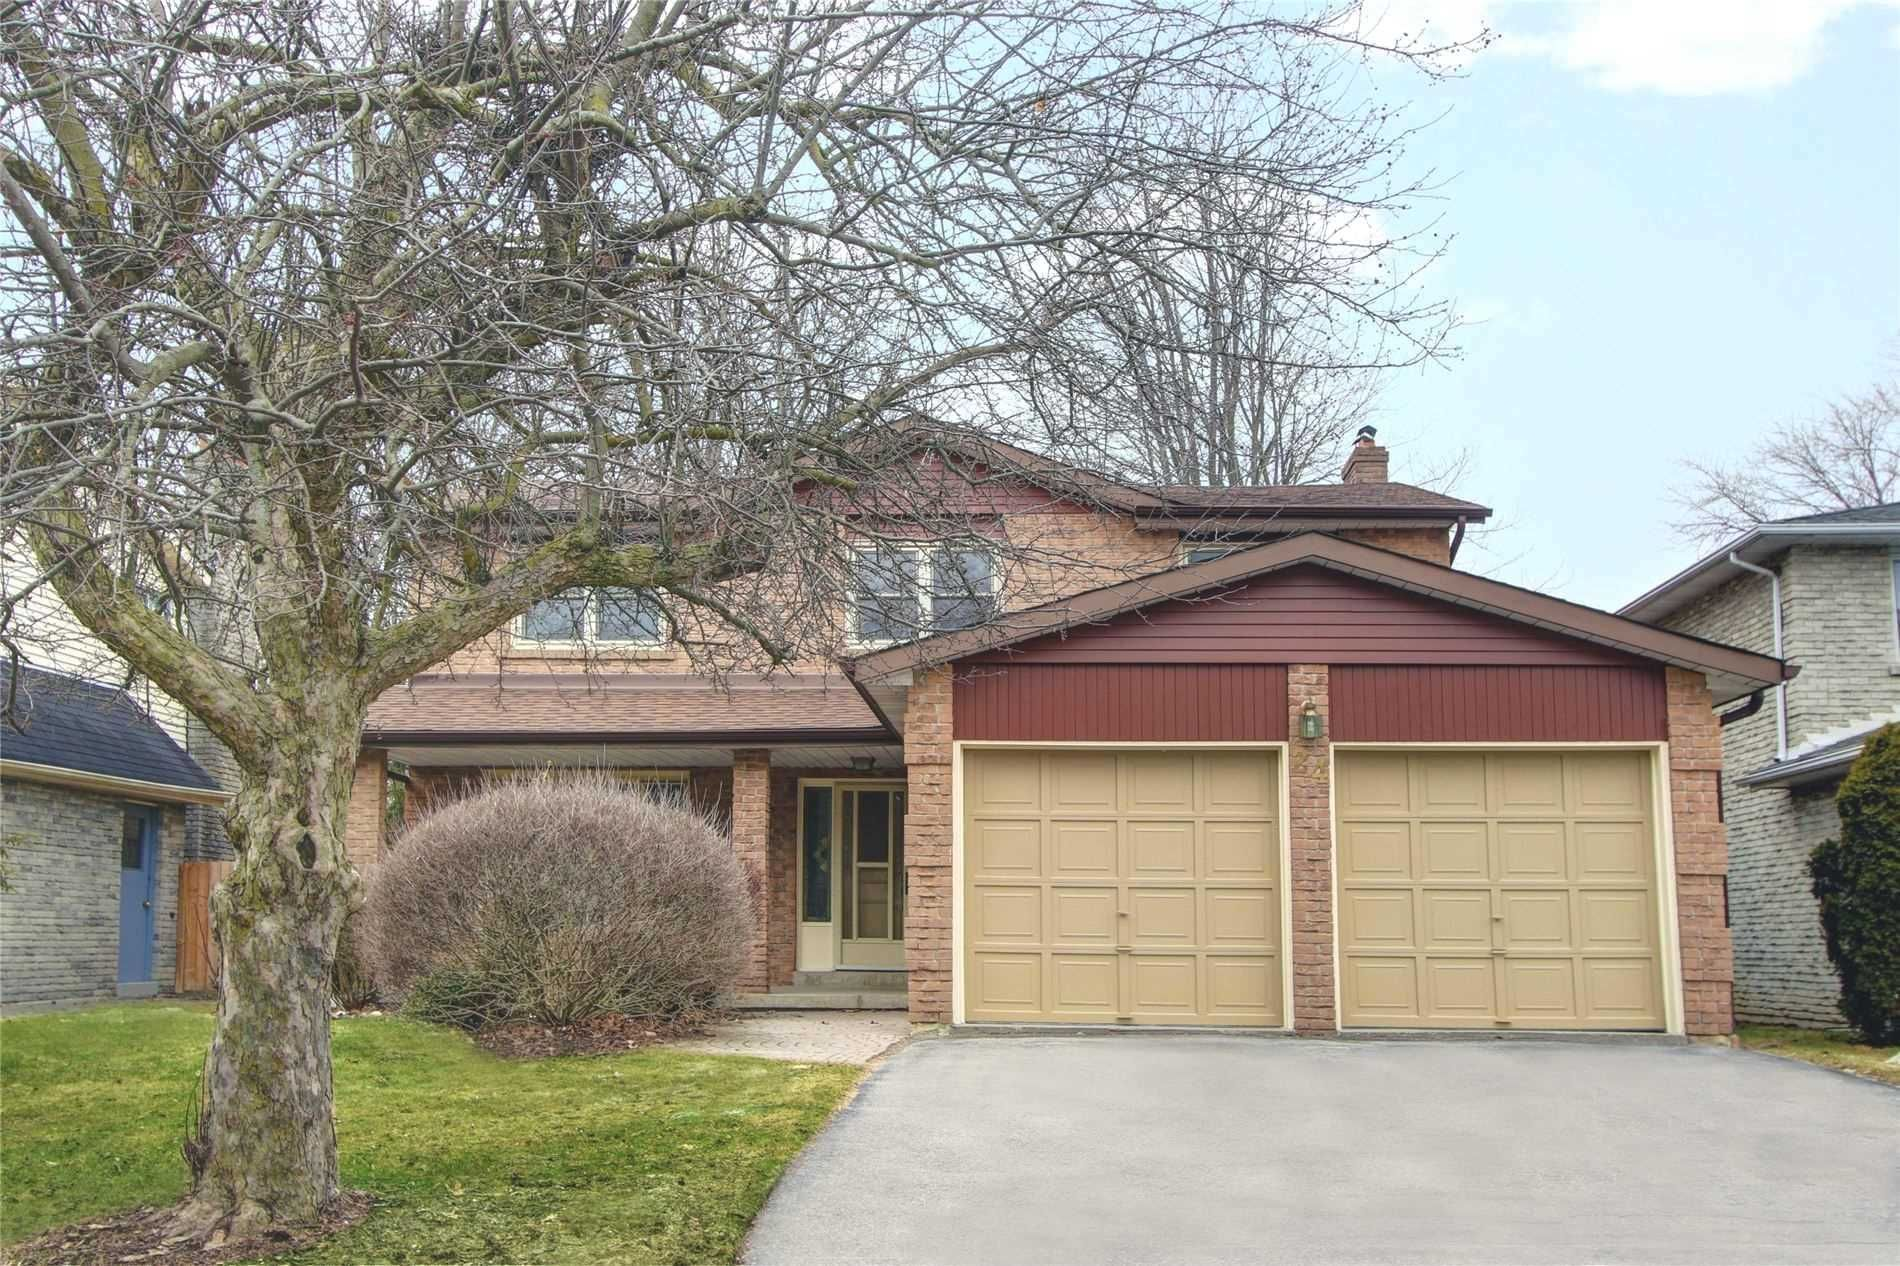 Main Photo: 24 Greentree Rd in Markham: Freehold for sale : MLS®# N4722562